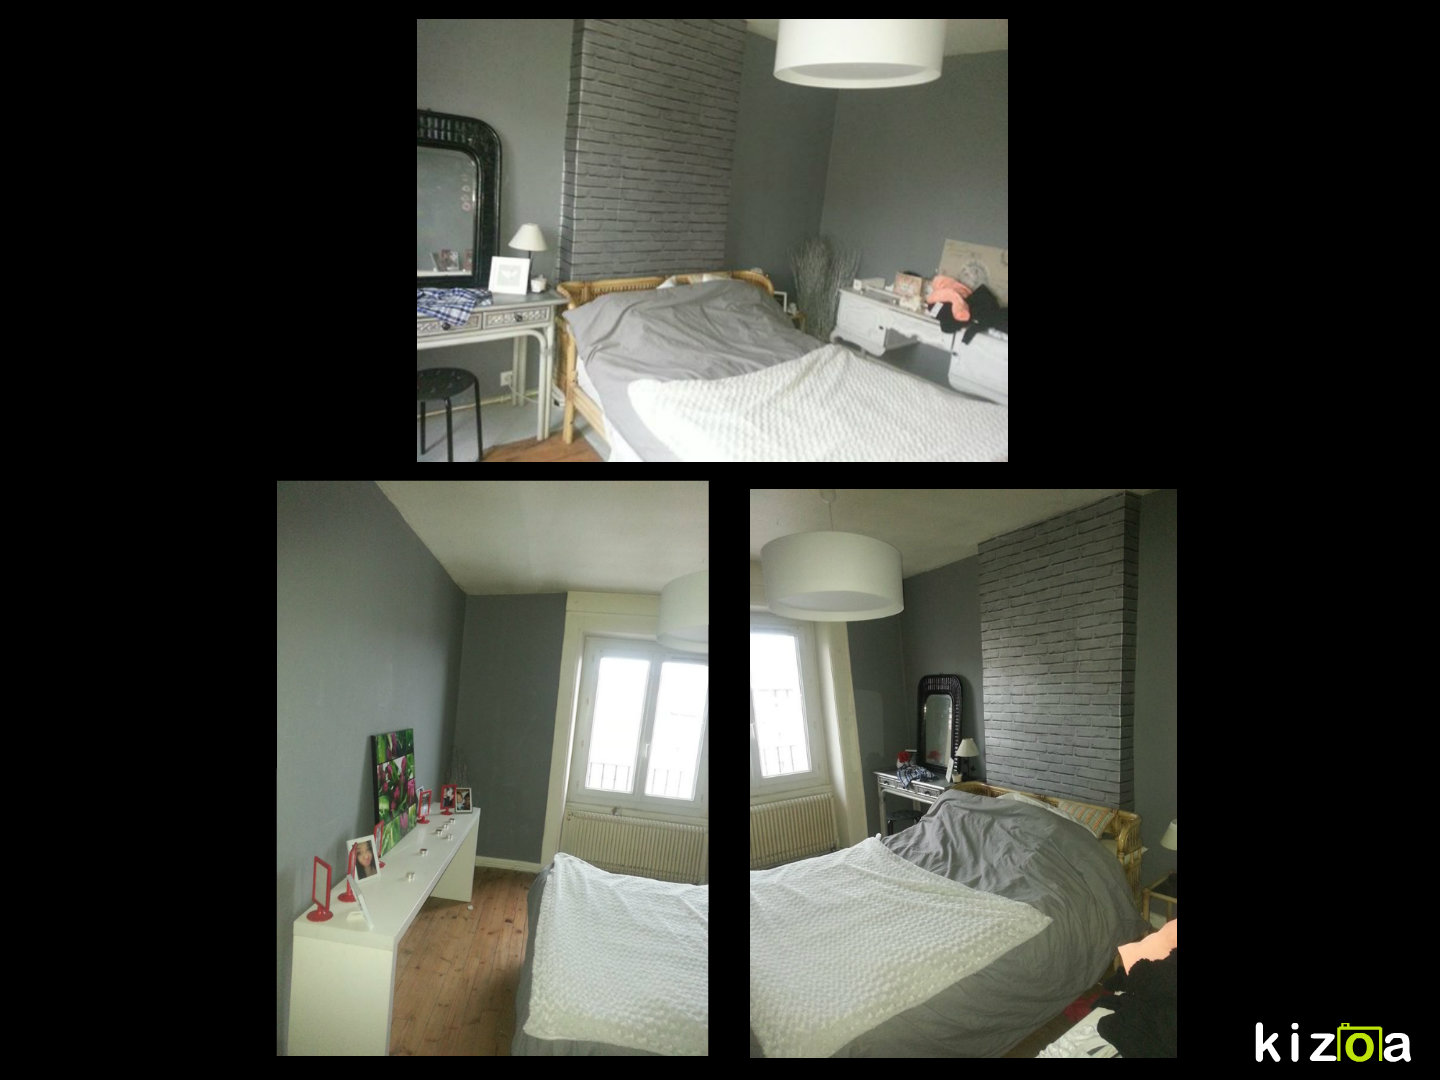 transformation d une chambre de 12m2 en un dressing deux parties photo avant. Black Bedroom Furniture Sets. Home Design Ideas